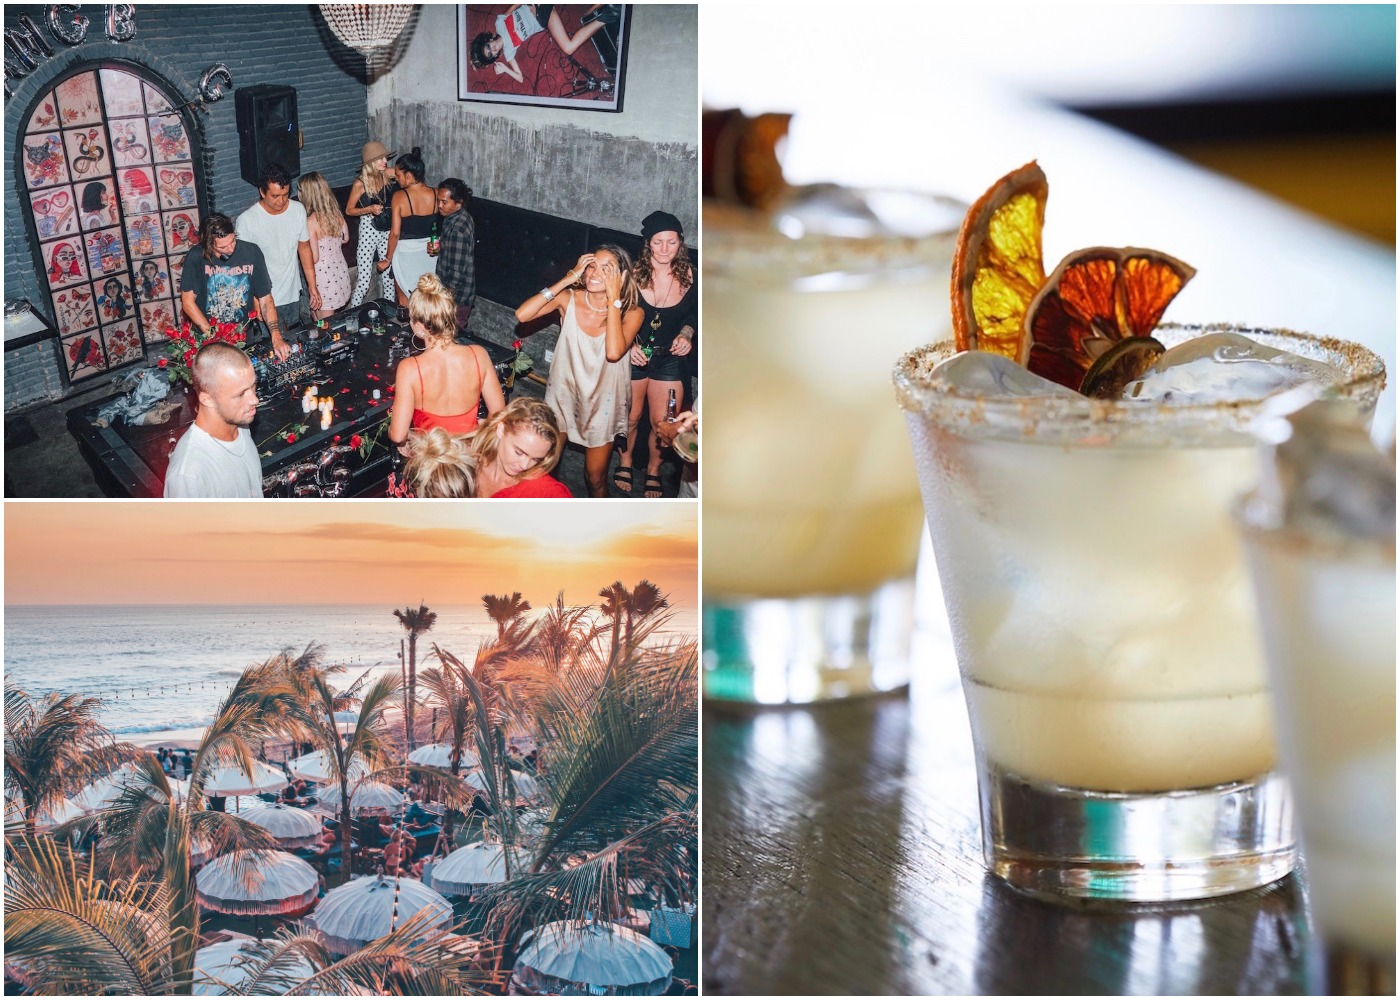 Best bars in Canggu | From cocktails to crazy clubs